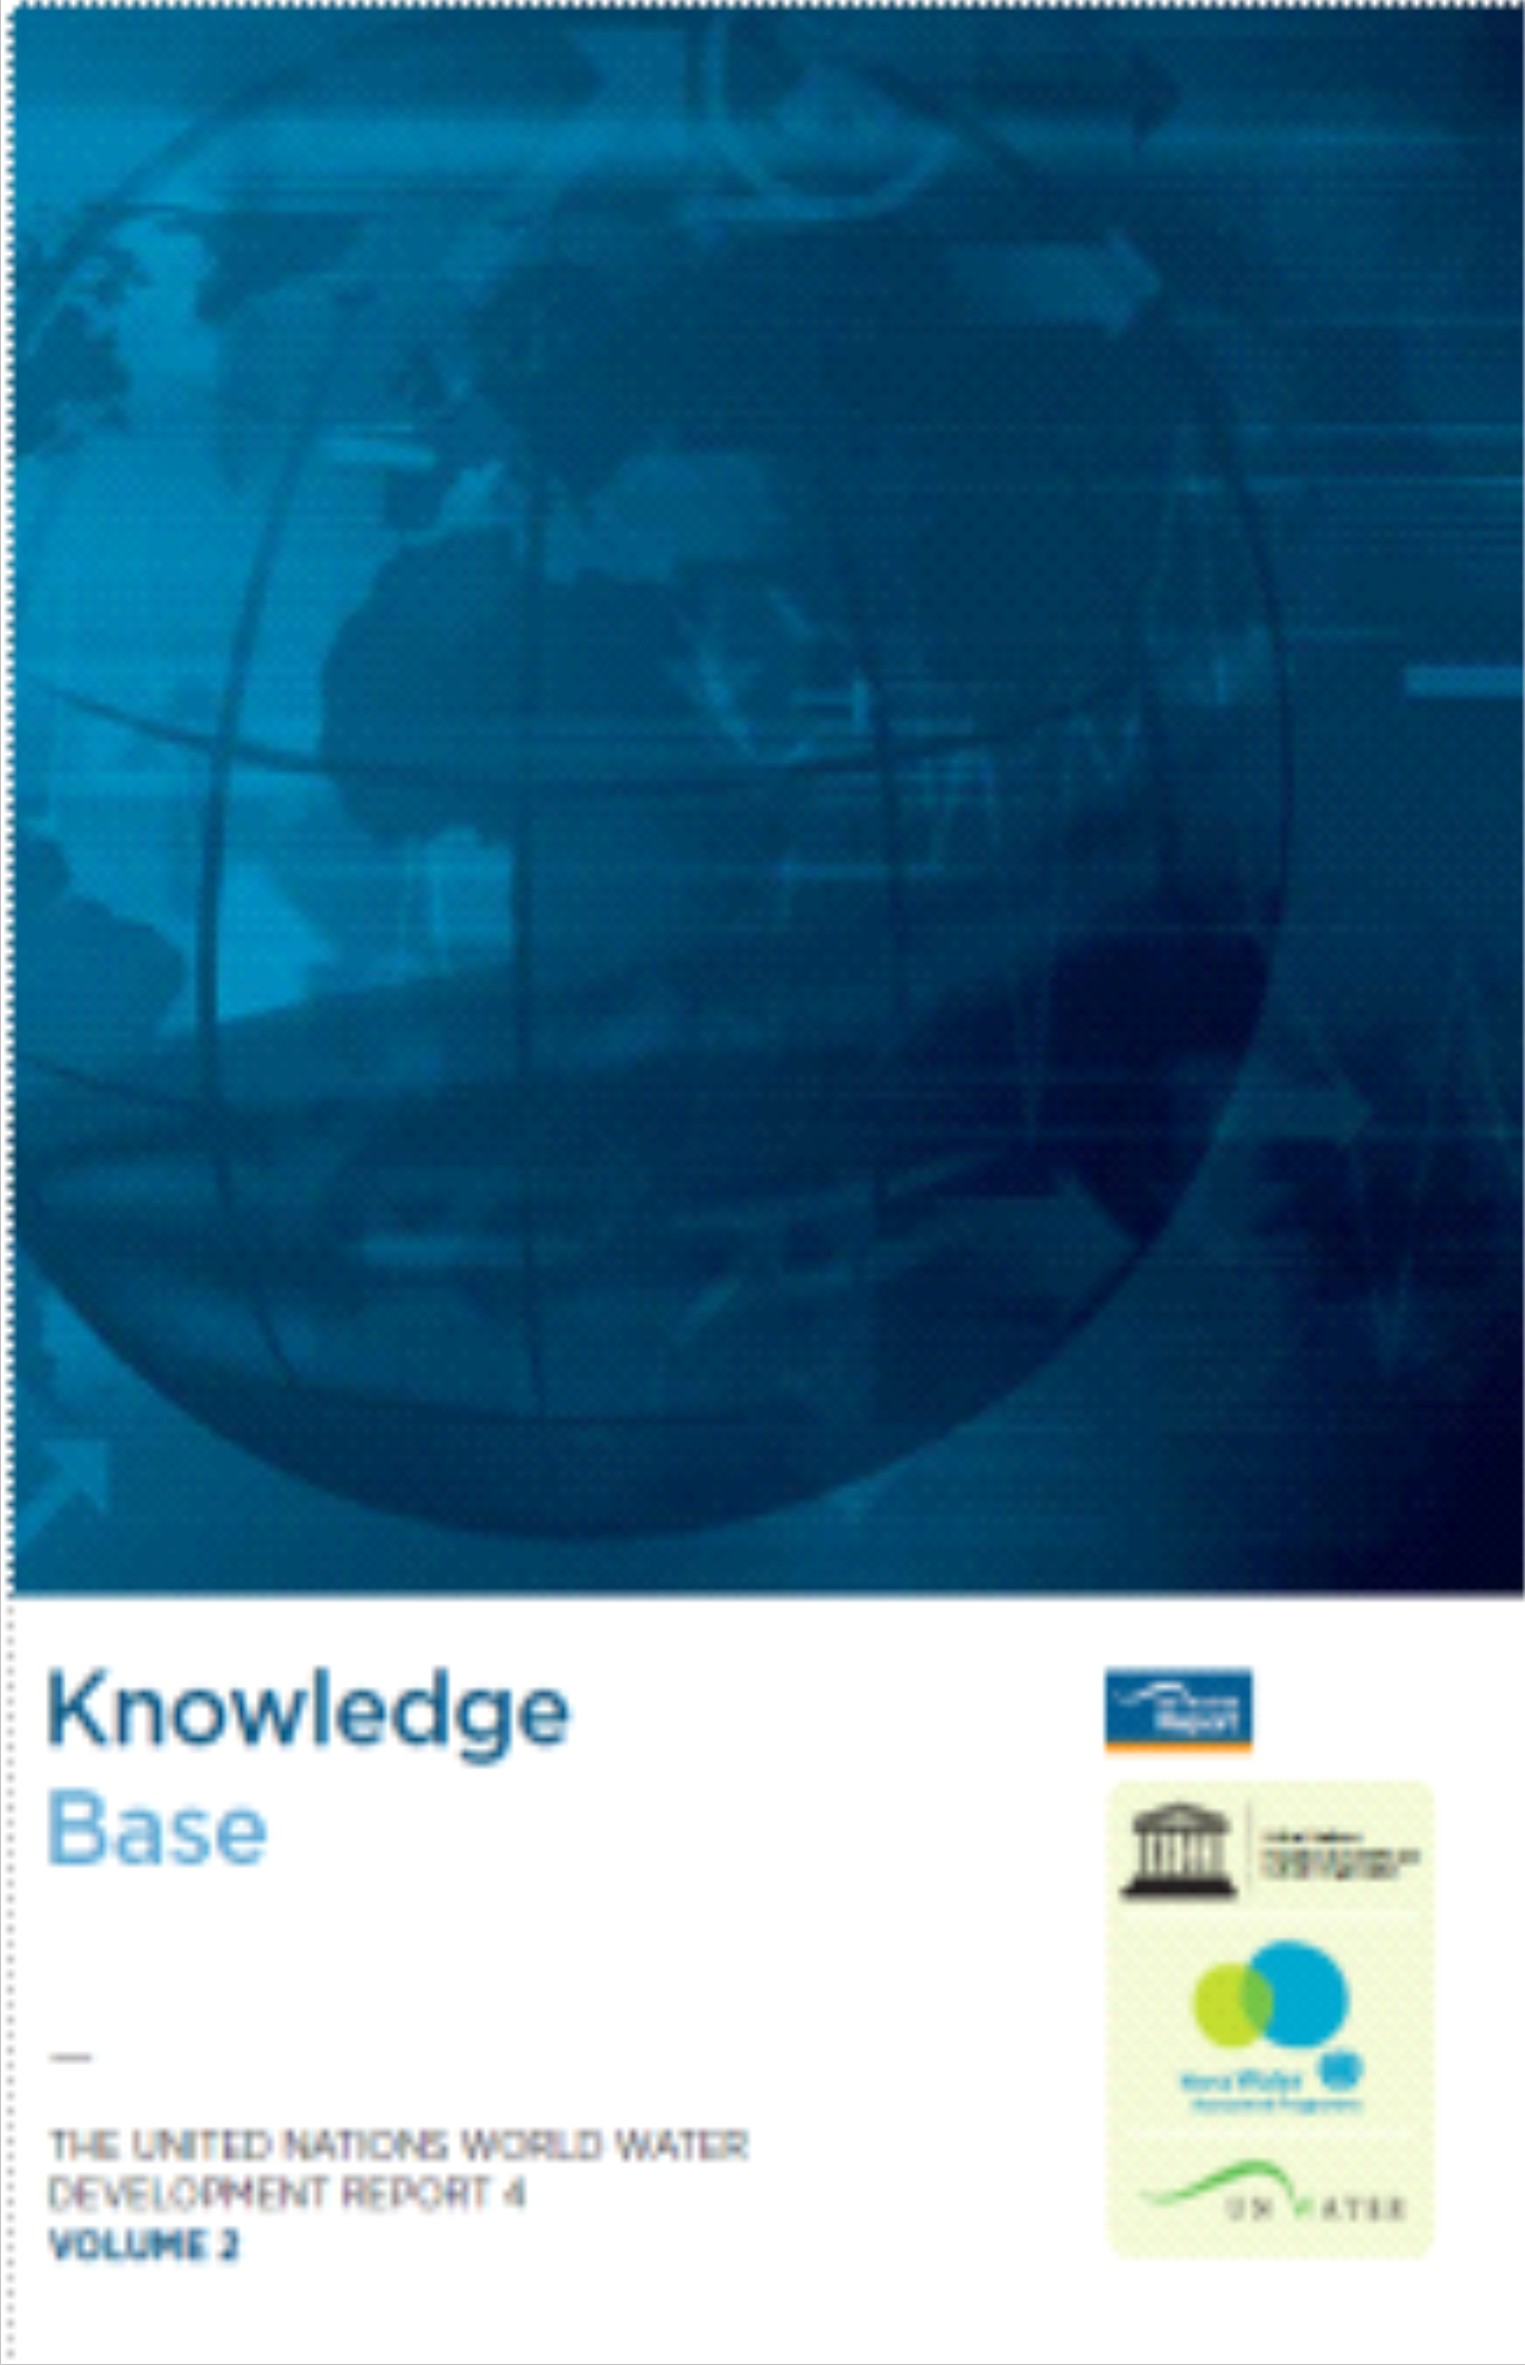 Capa da The United Nations World Water Development Report 4 - Volume 2 - Knowledge Base